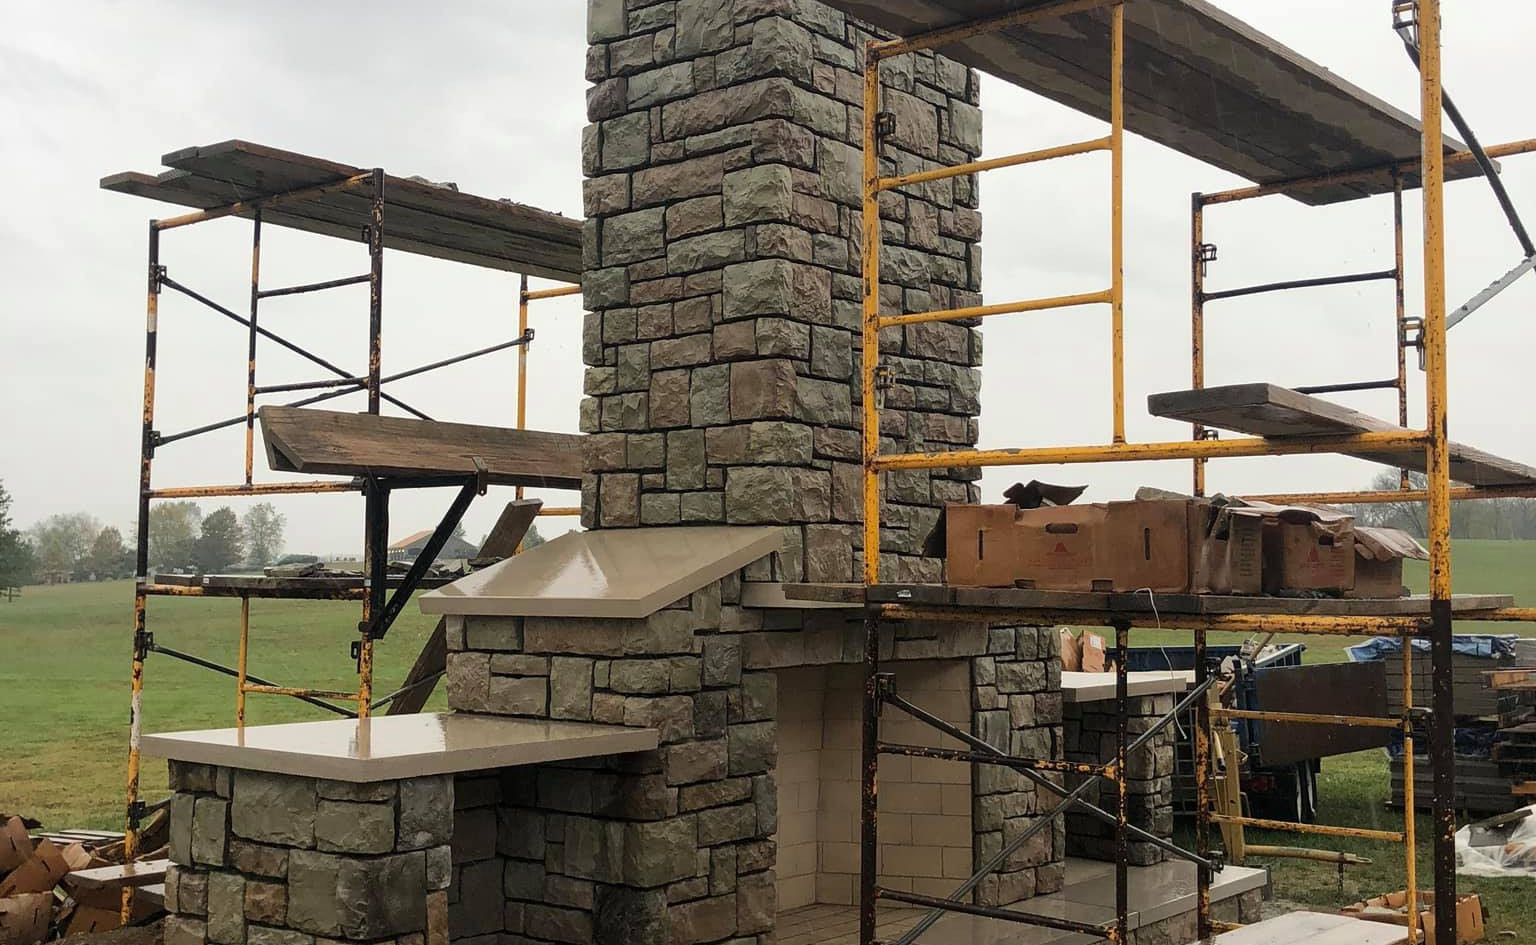 THE STONE ON THE OUTDOOR FIREPLACE